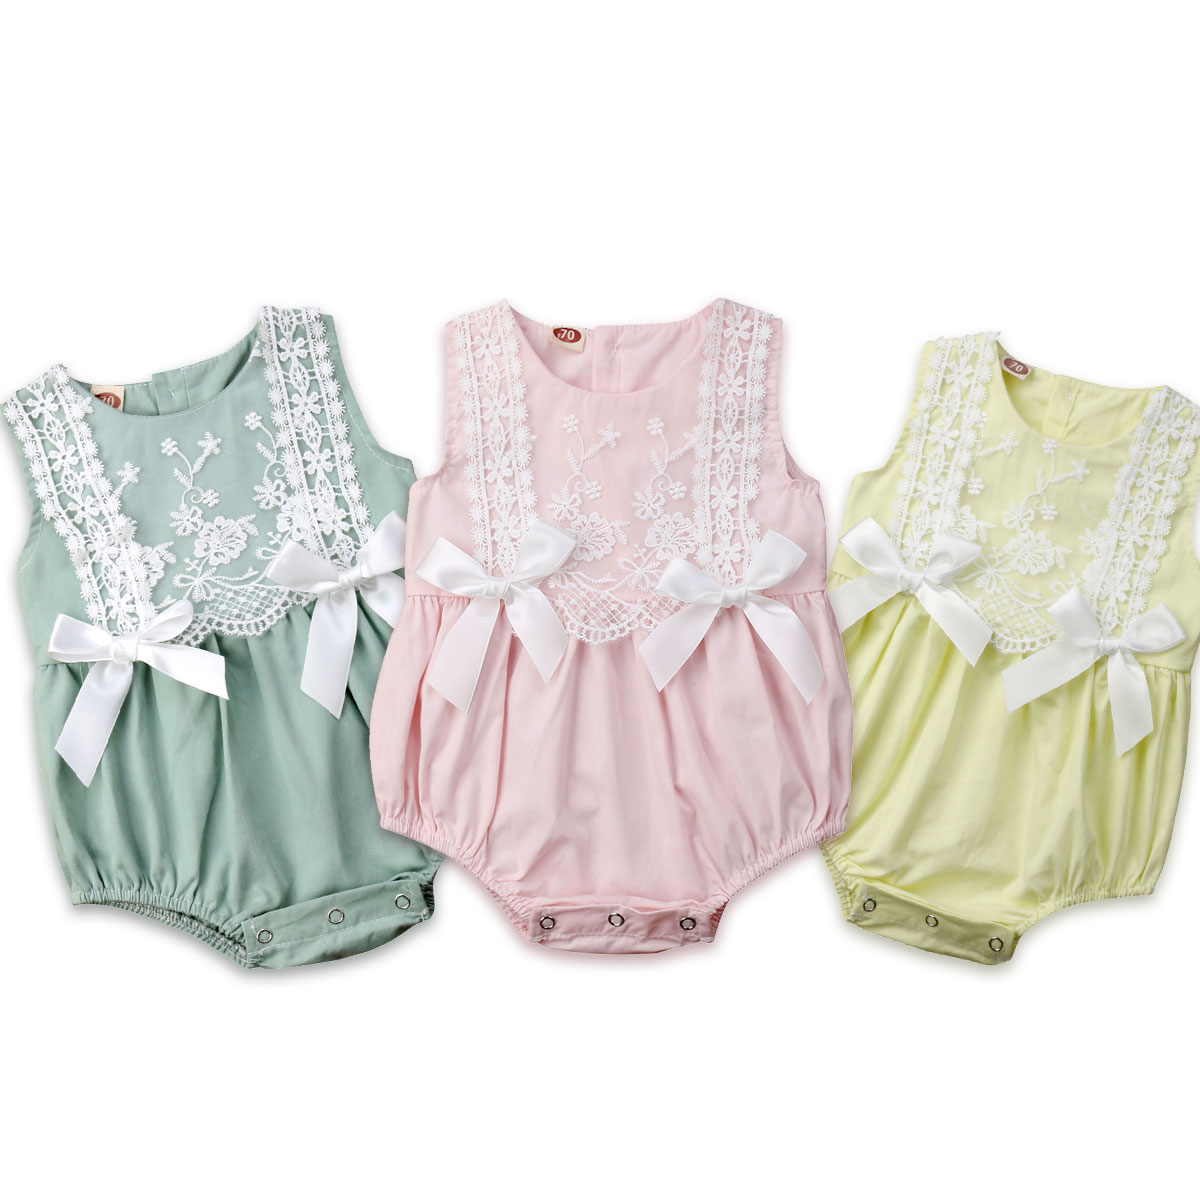 57bed87d6fe Infant Newborn Baby Girls Clothing Lace Ruffles Rompers Jumpsuit Cute Bow Sunsuit  Summer 2019 Baby Girls